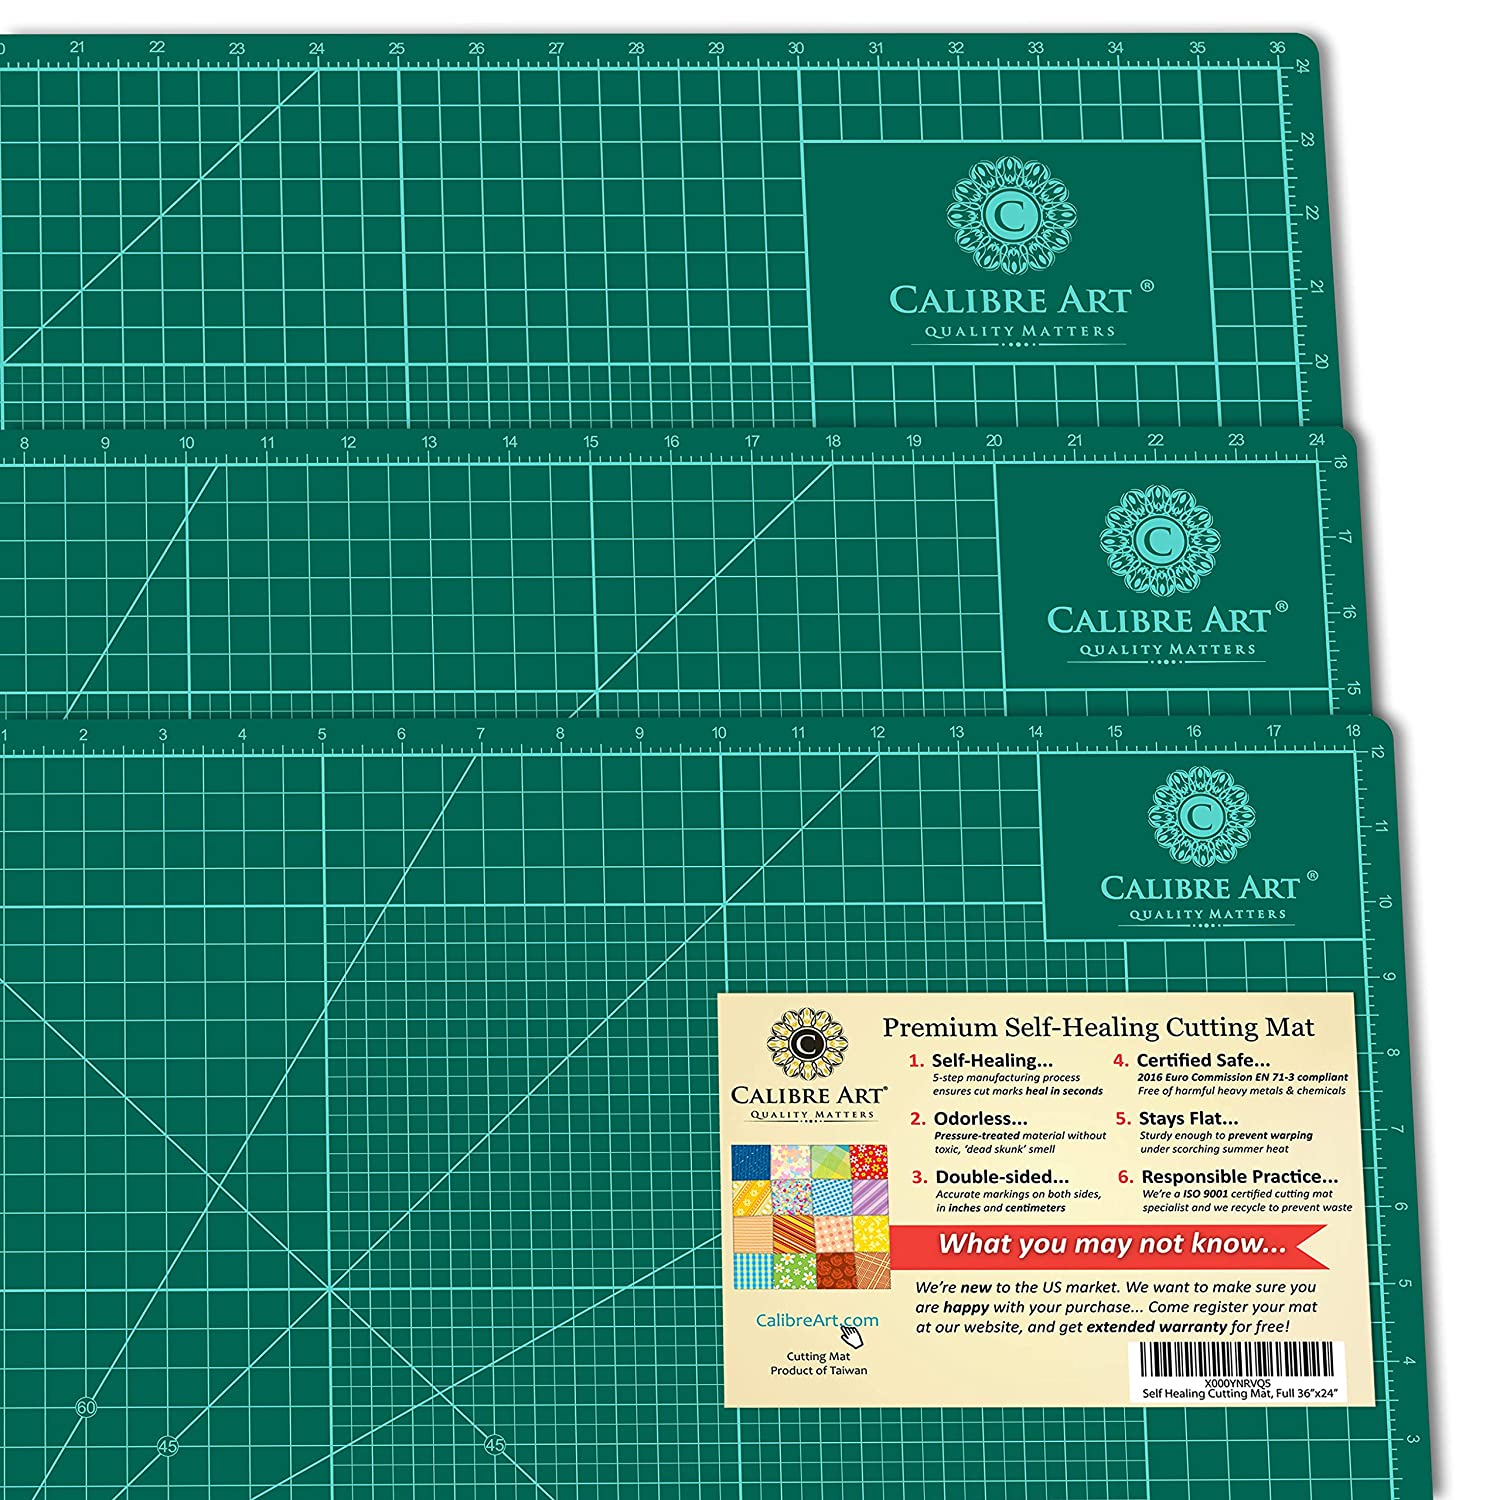 Self Healing Rotary Cutting Mat, Full 24x36, Best for Quilting Sewing | Warp-Proof & Odorless (Not From China) Calibre Art 6057989